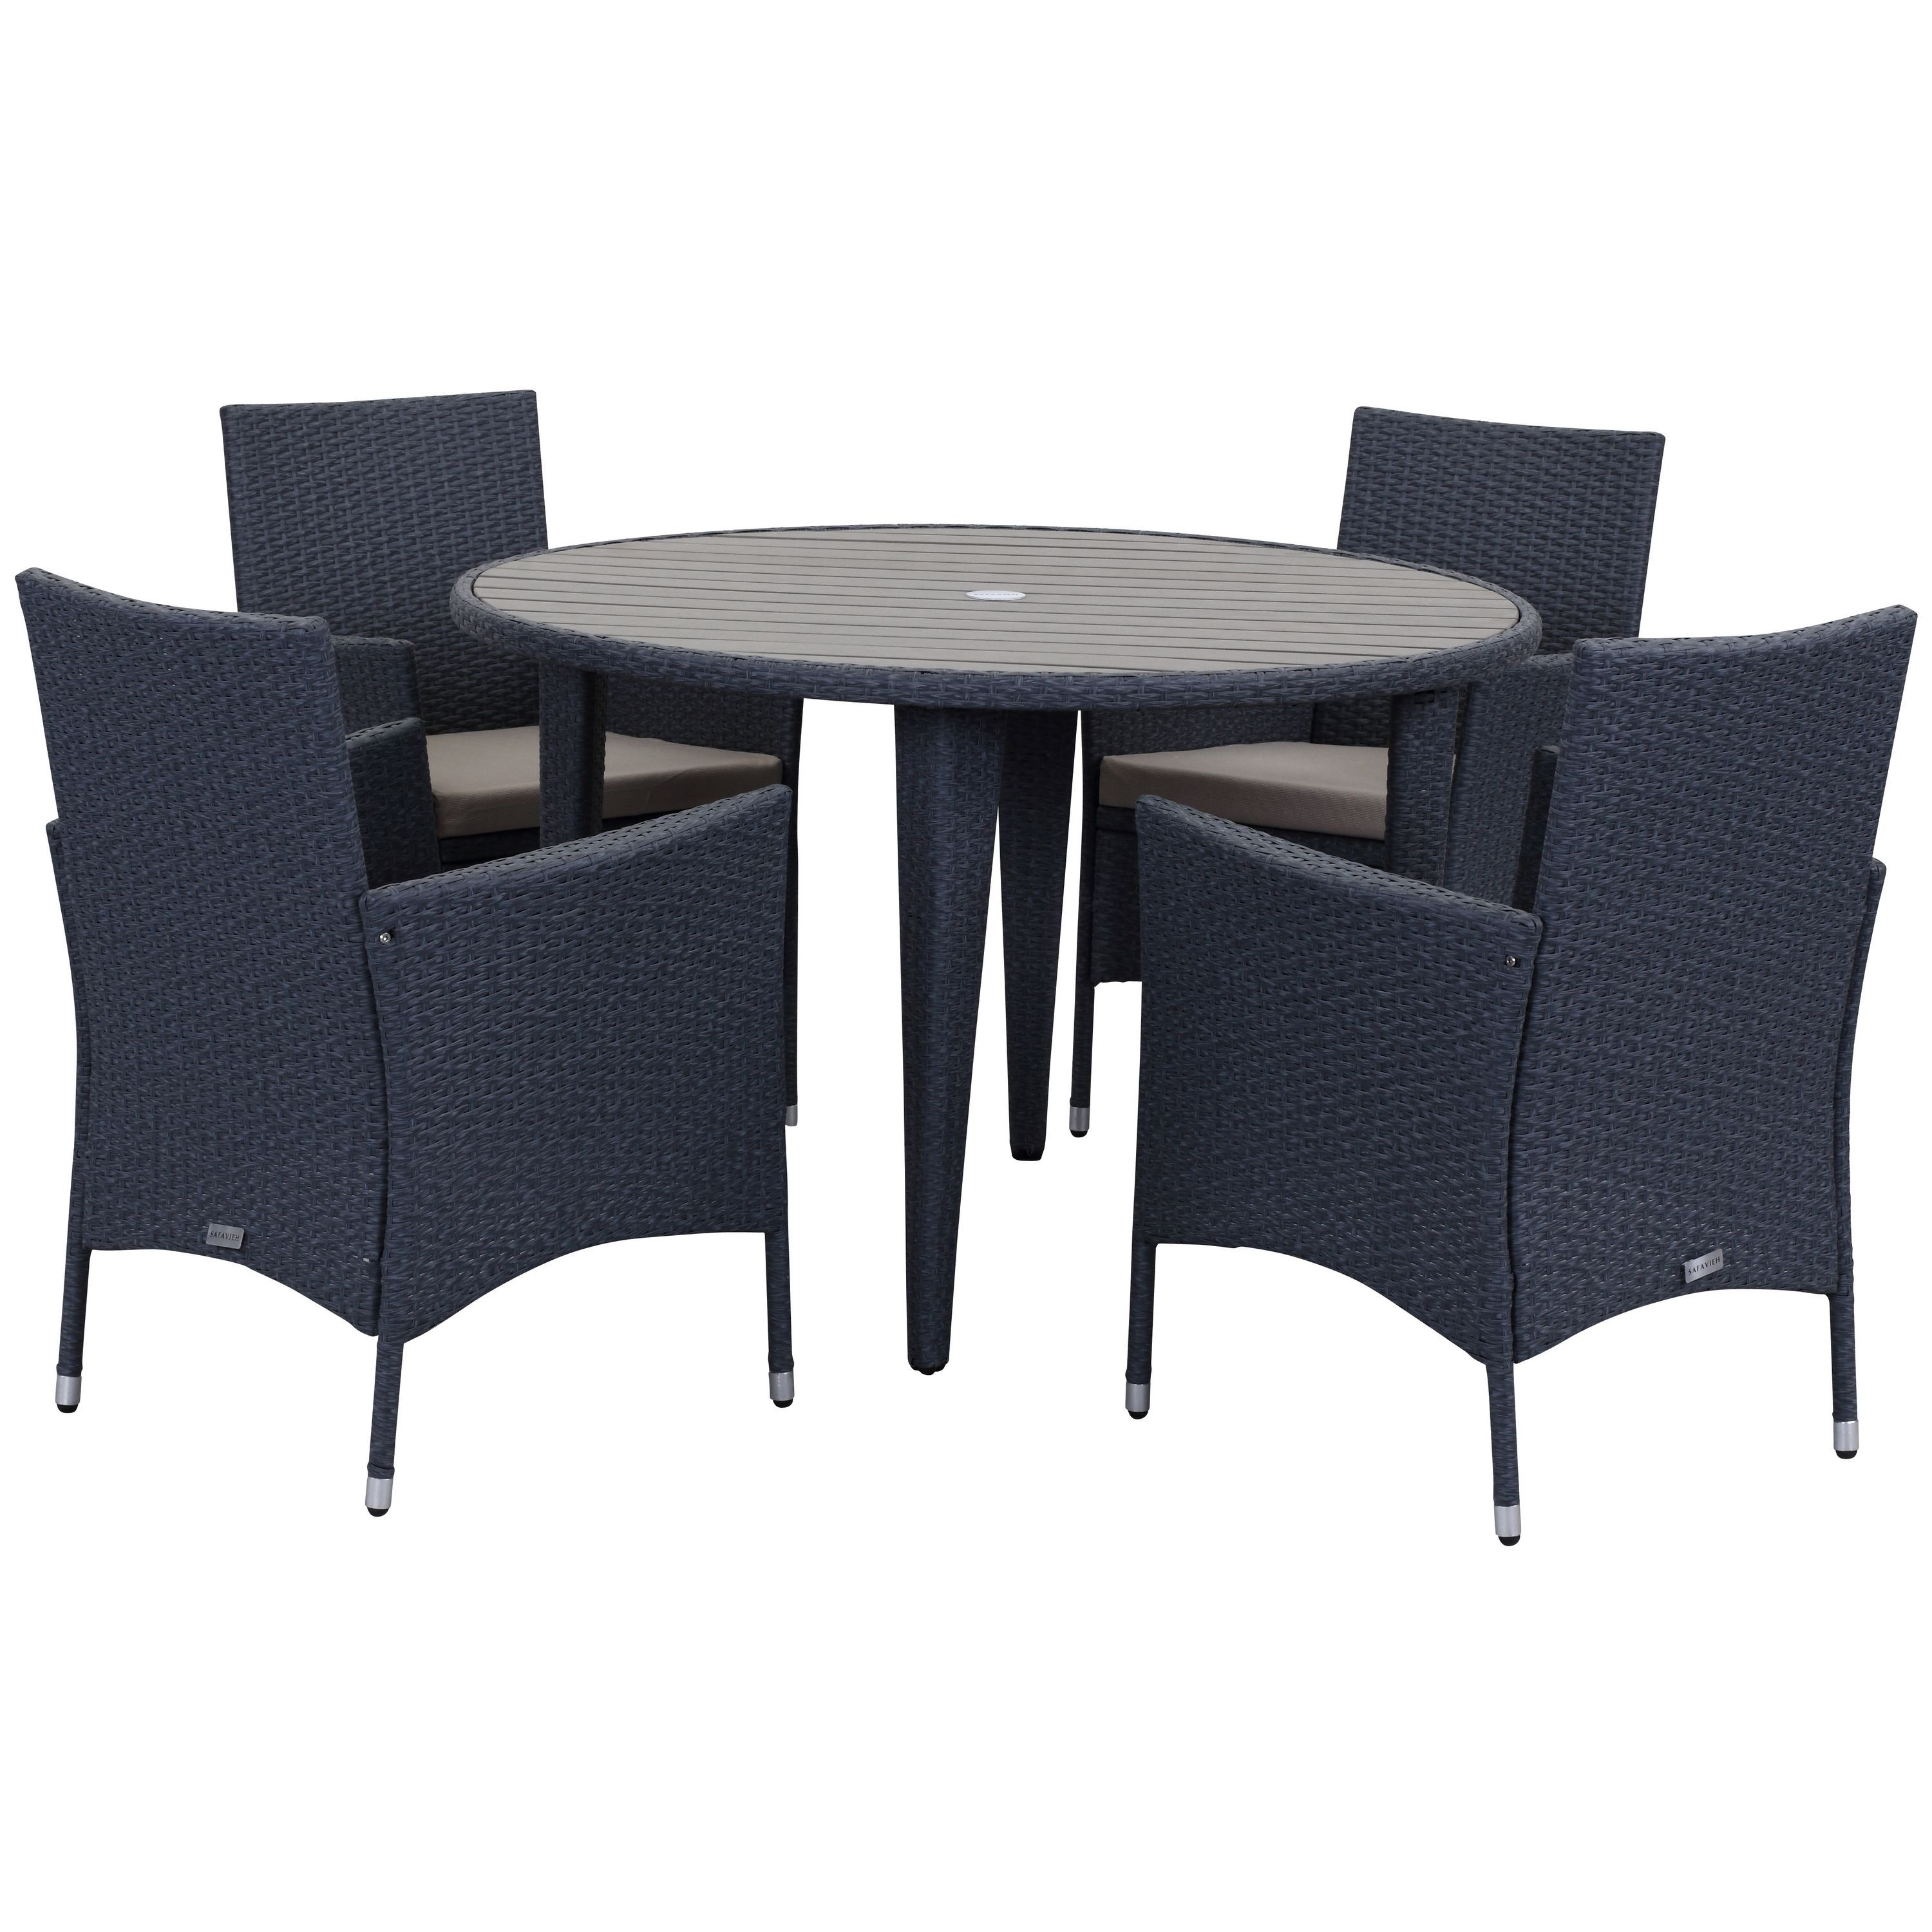 Safavieh Outdoor Living Cooley Titanium Sand Dining Set 5 piece